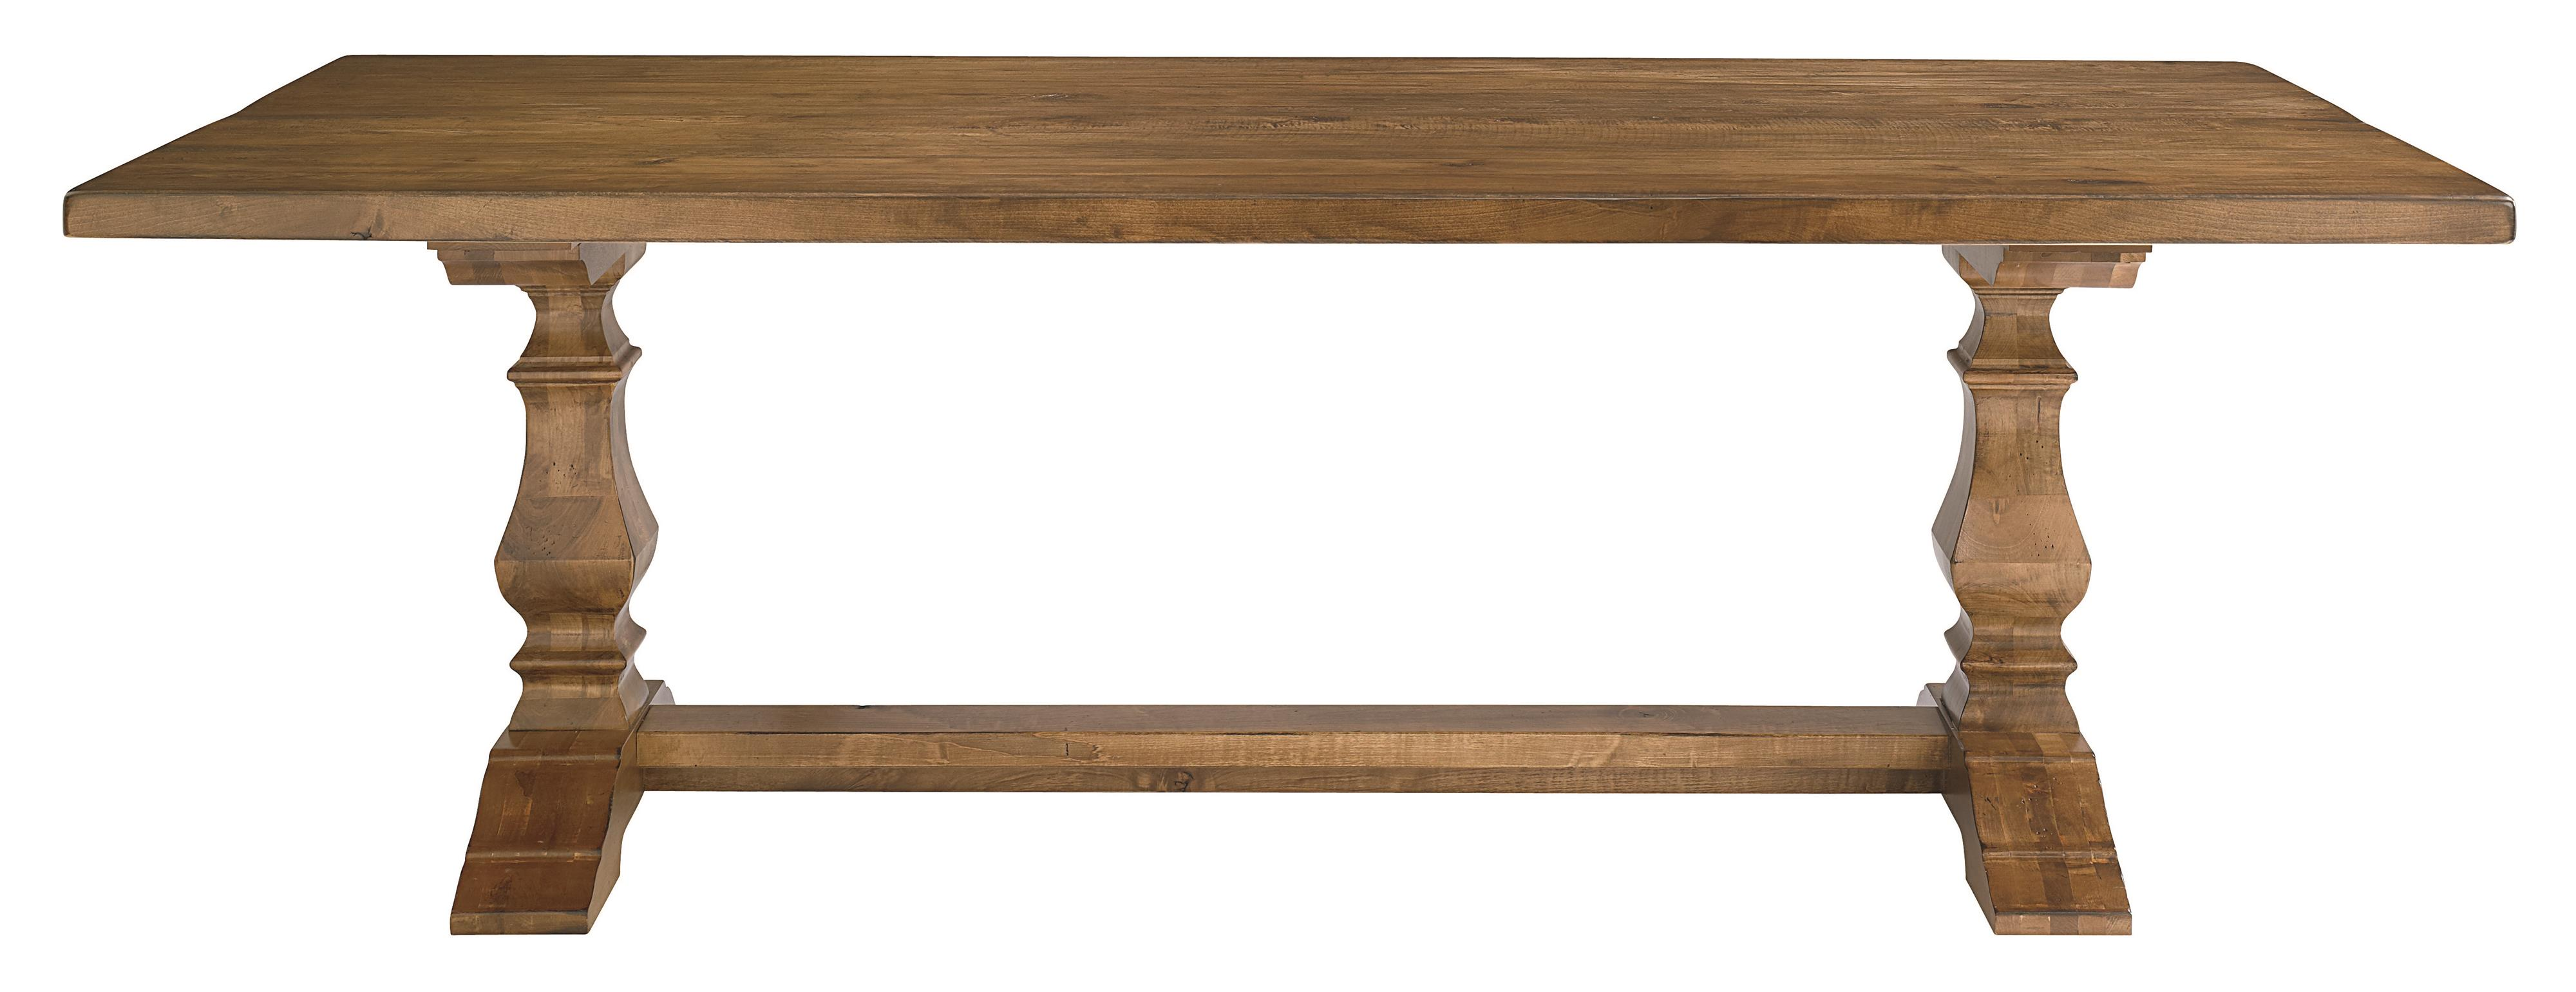 "Bassett Bench Made 90"" Rectangle Table - Item Number: 4015-9042-HARV-Agsaddle"